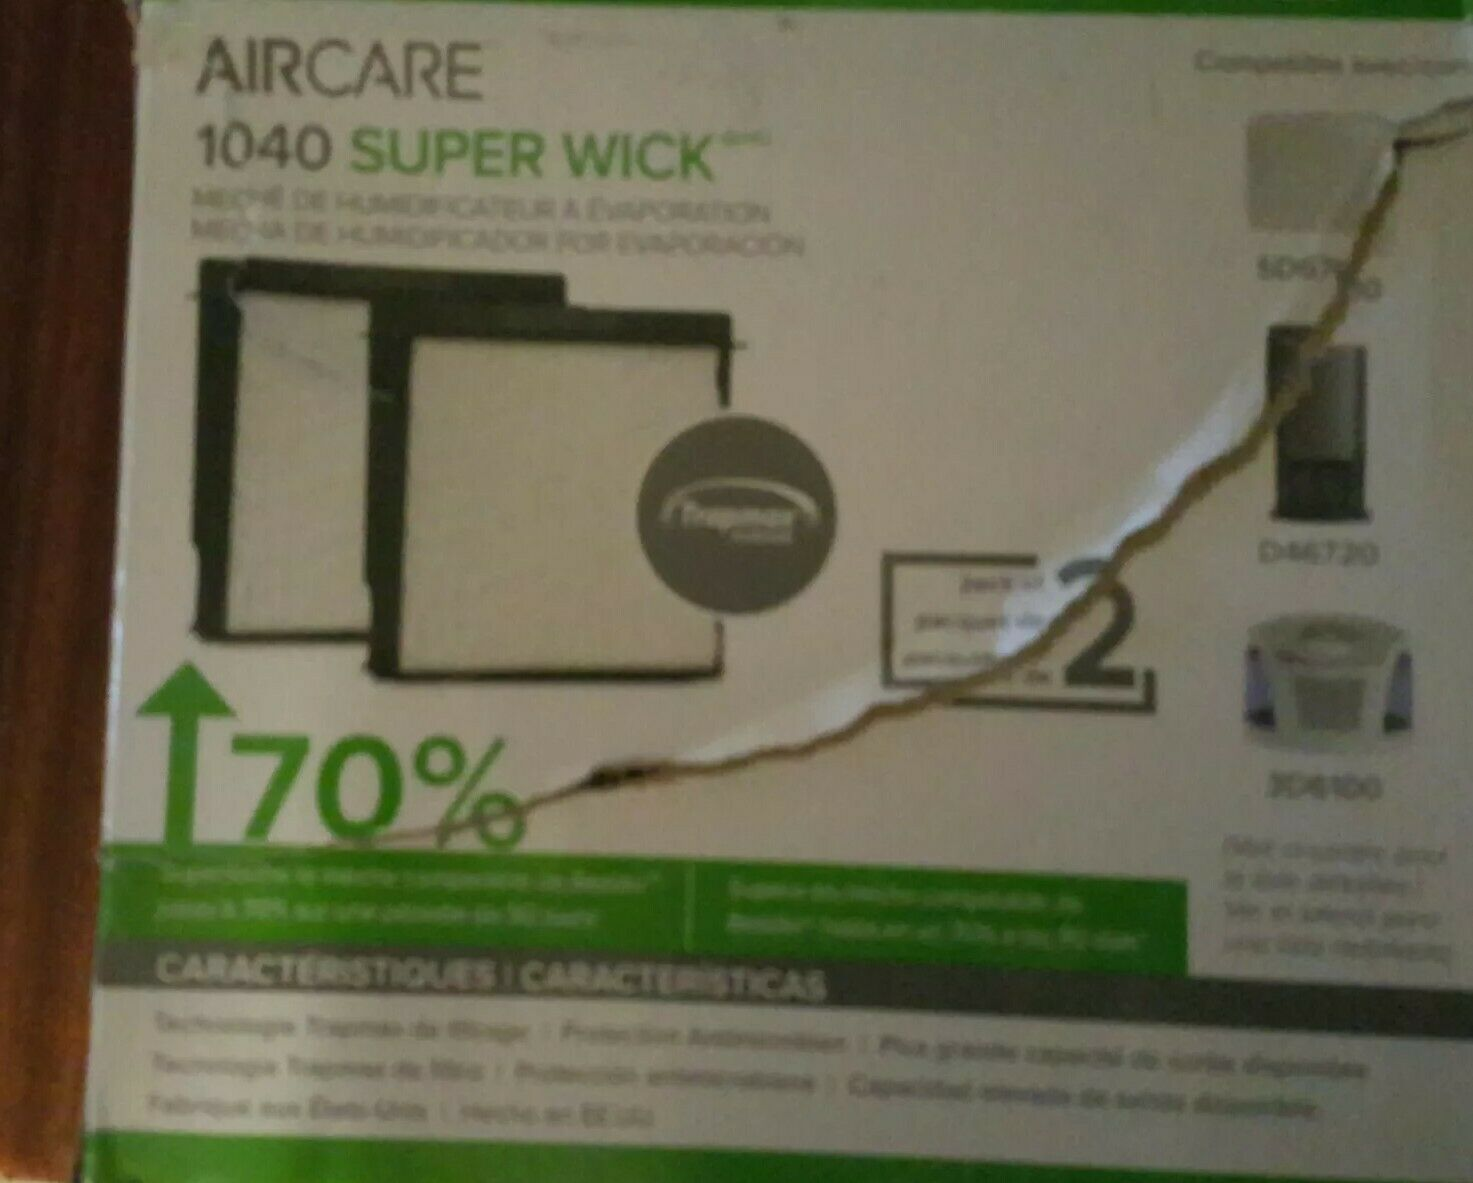 2 Pack AirCare 1040 Super Wick Filter Humidifier Accessory Antimicrobial Air Protection White